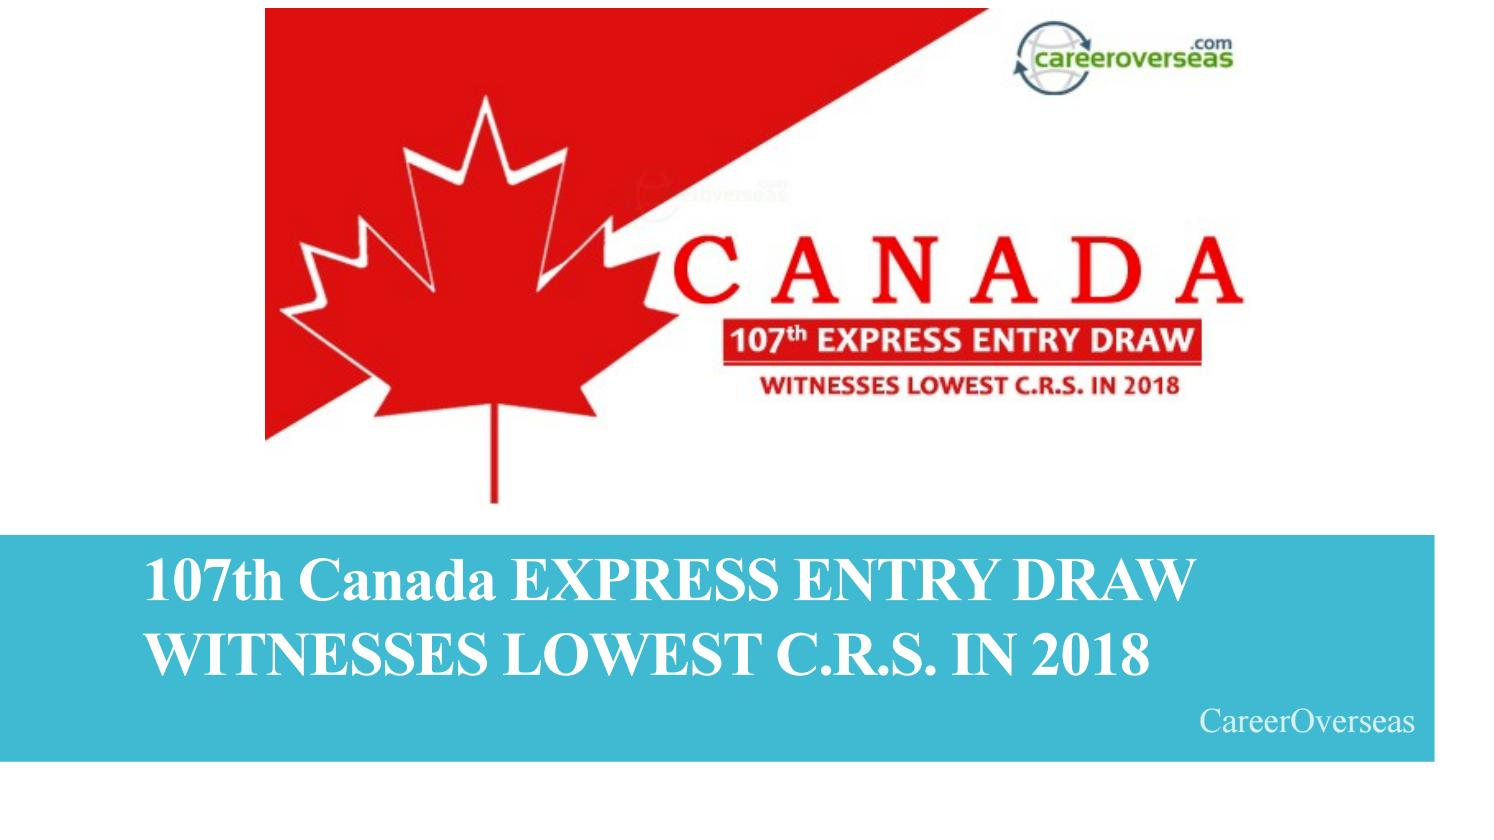 107th Canada EXPRESS ENTRY DRAW WITNESSES LOWEST C R S  IN